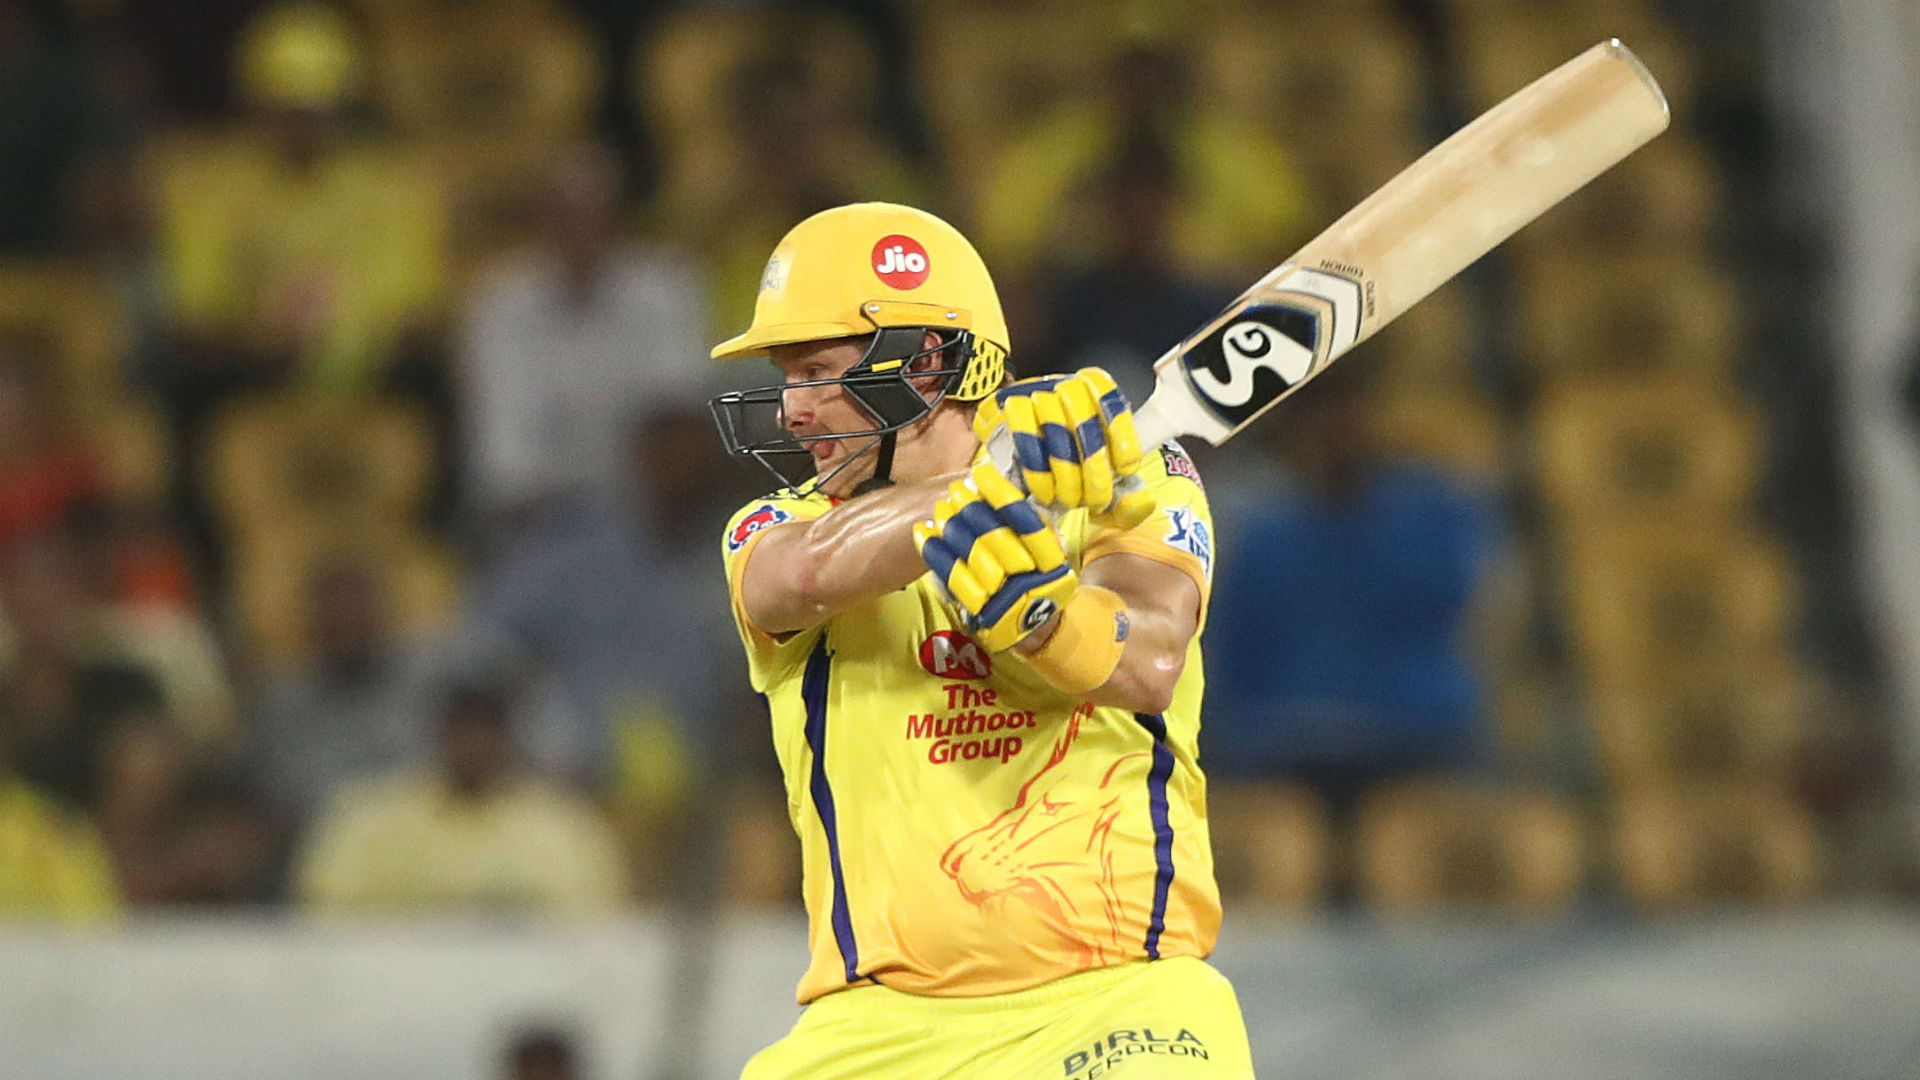 Bloodied Watson needed stitches after IPL final heroics